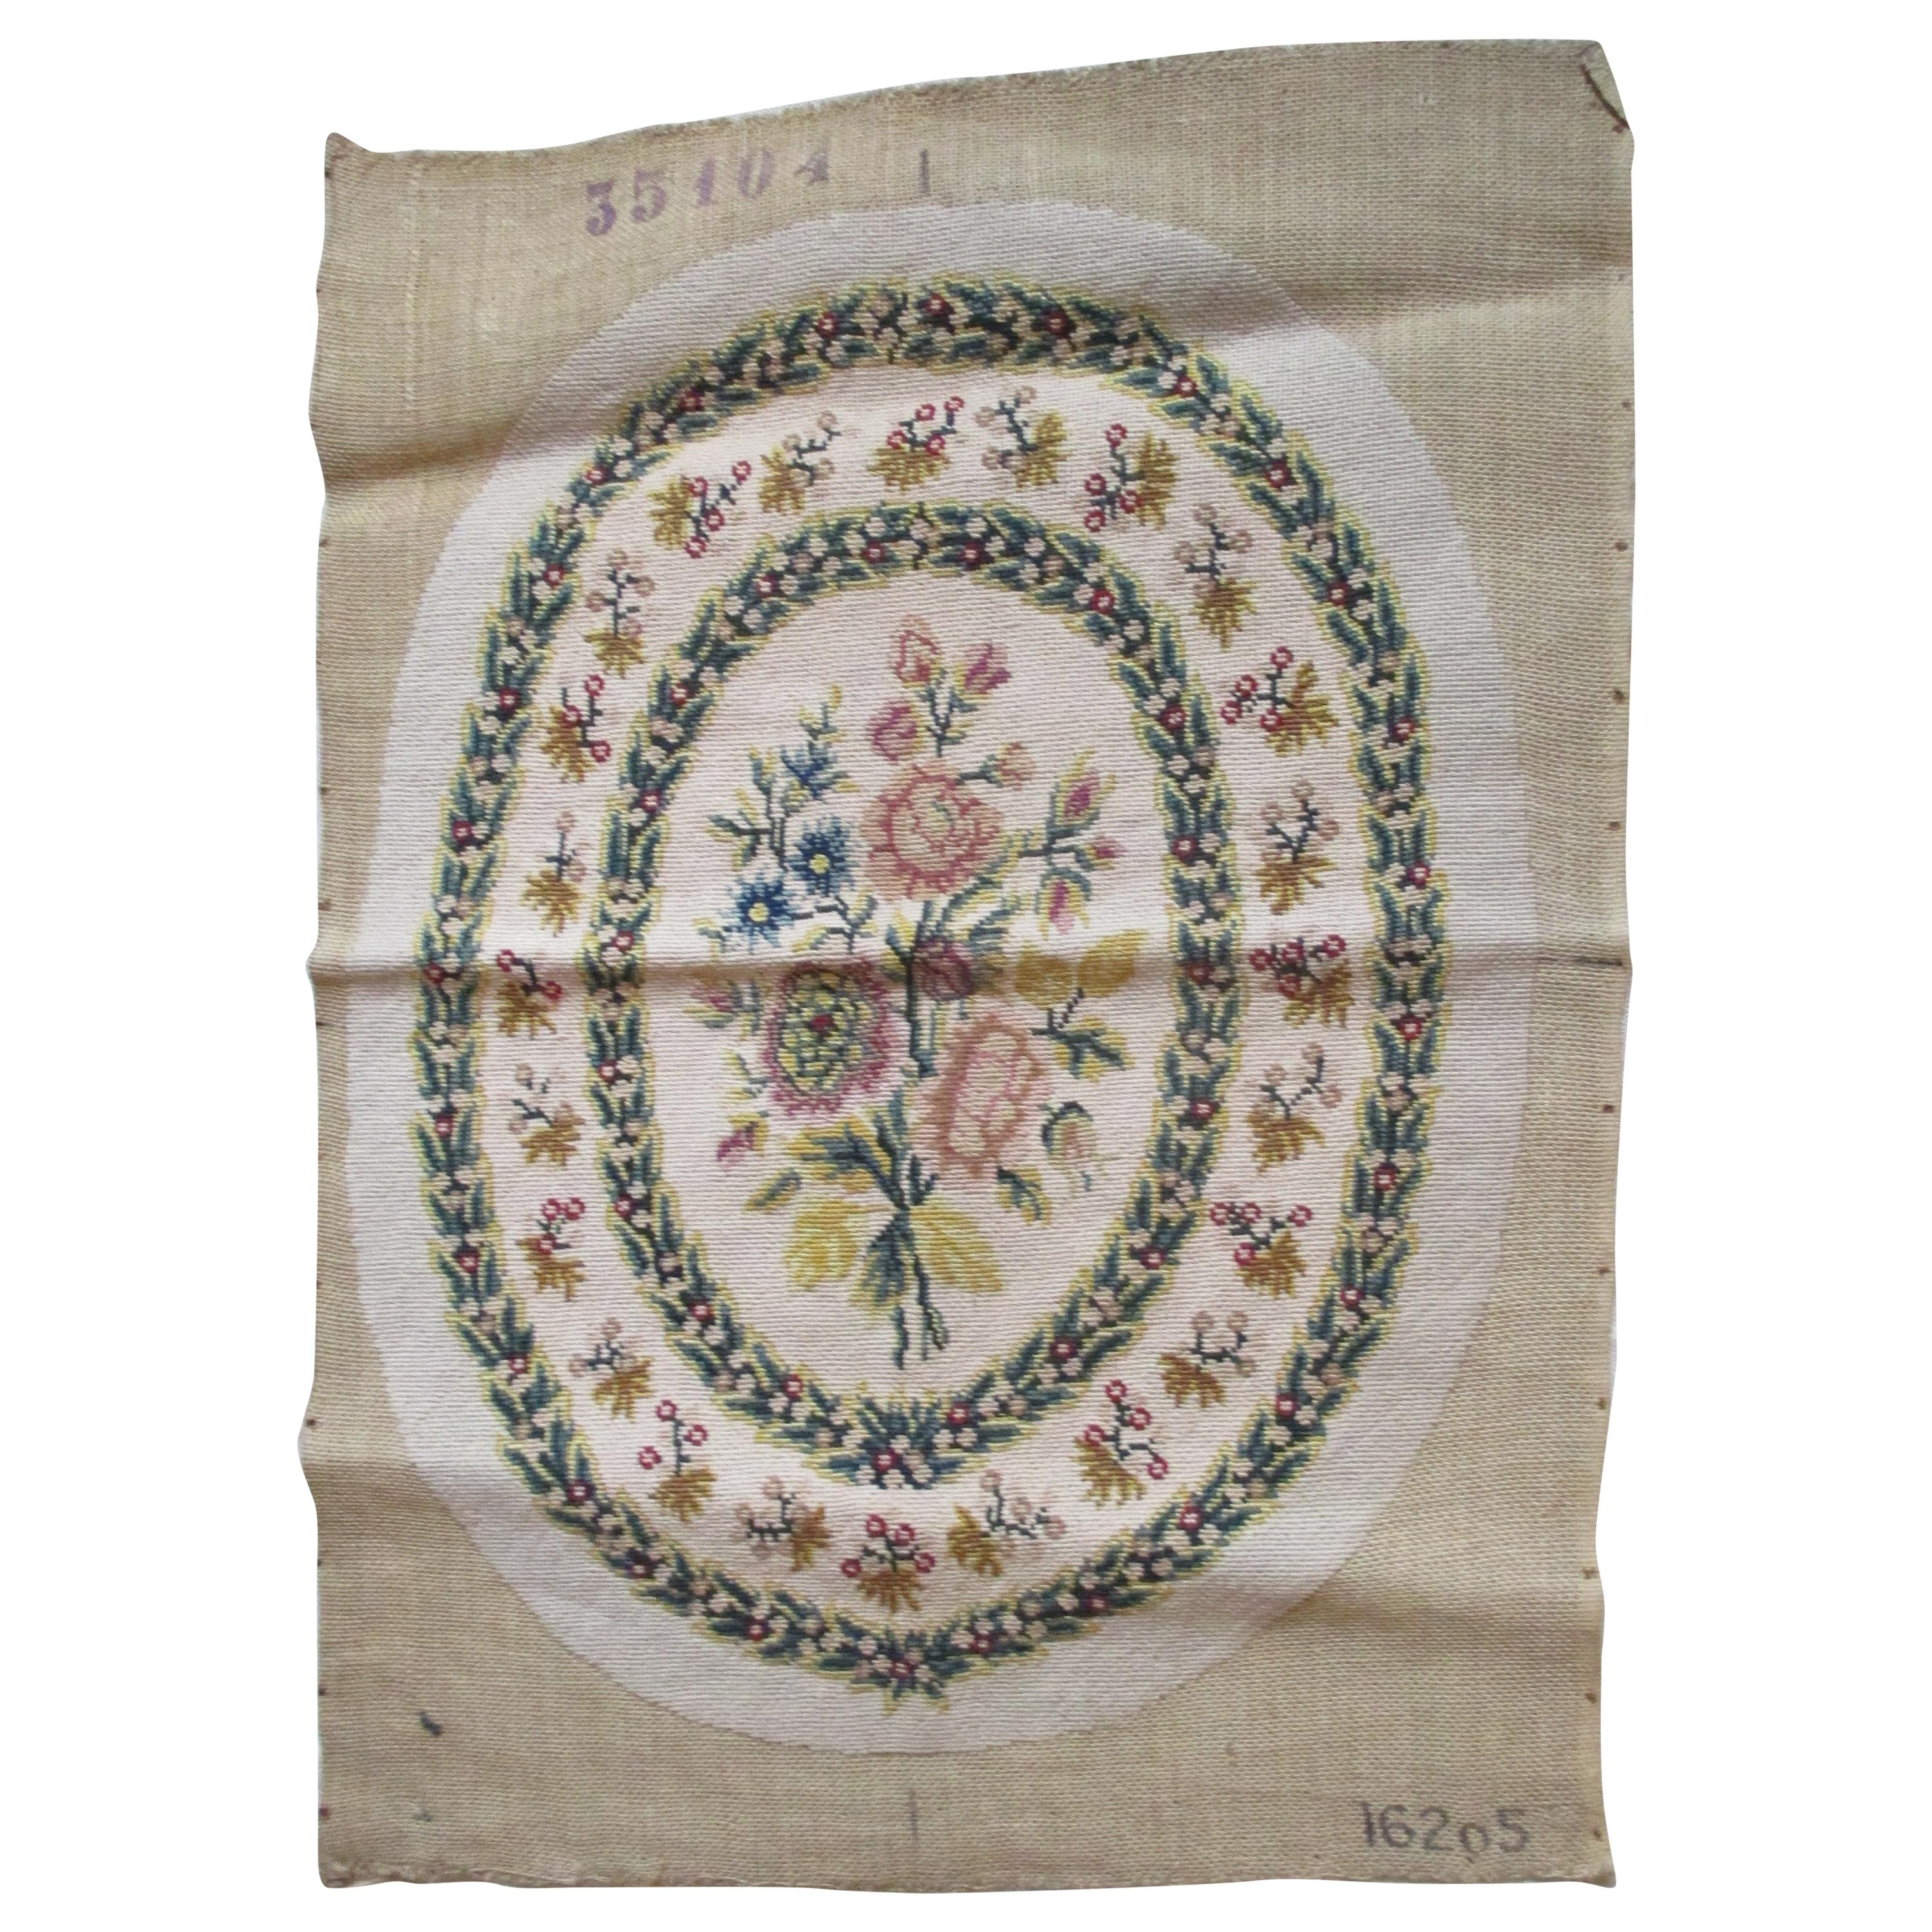 Antique Oval Floral Aubusson Tapestry Seat Cover